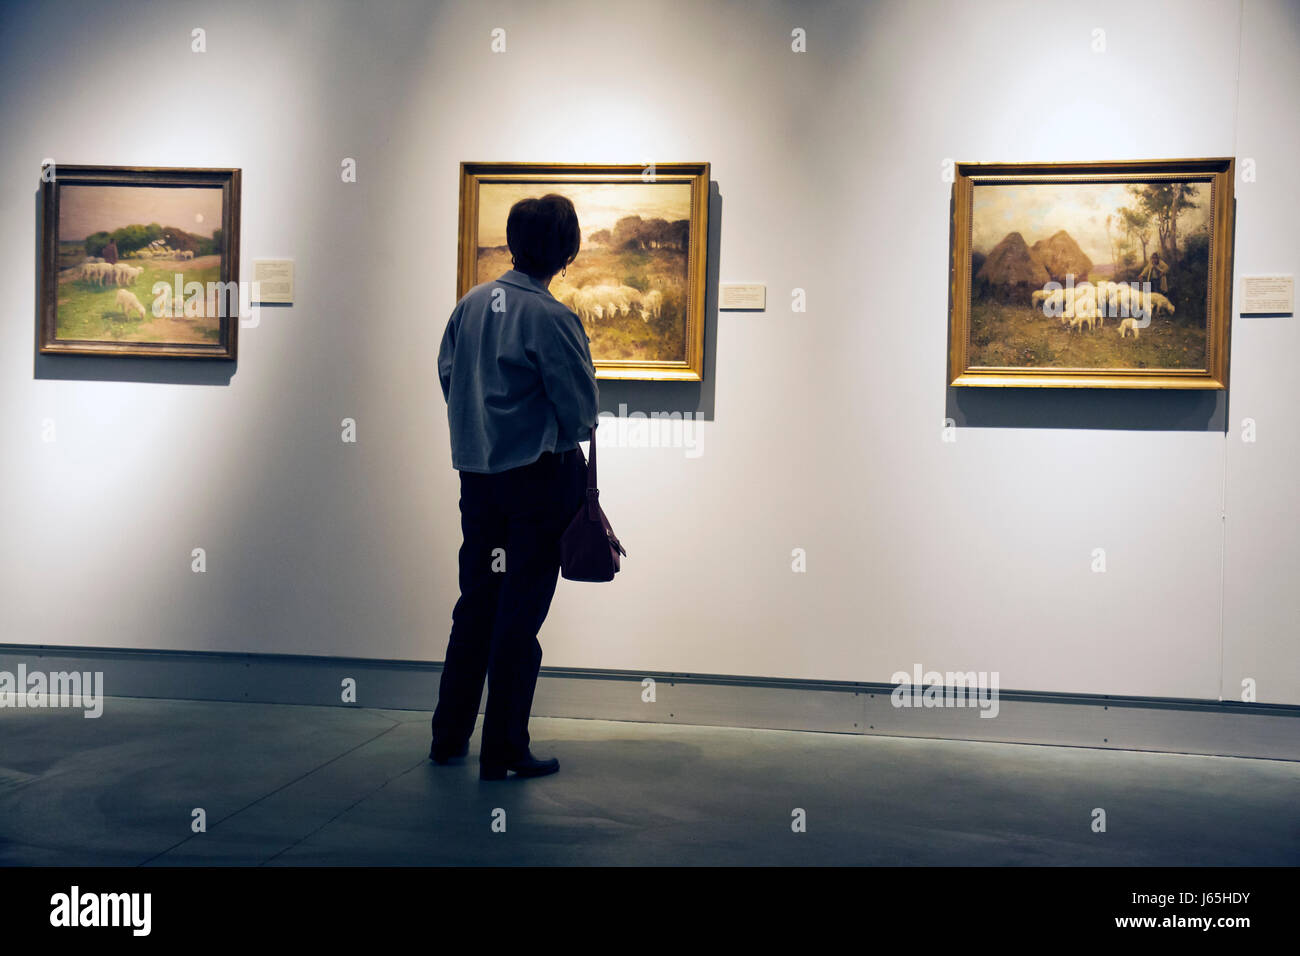 Saginaw Michigan Saginaw Art Museum education exhibit collection woman middle-aged looking framed paintings landscapes - Stock Image